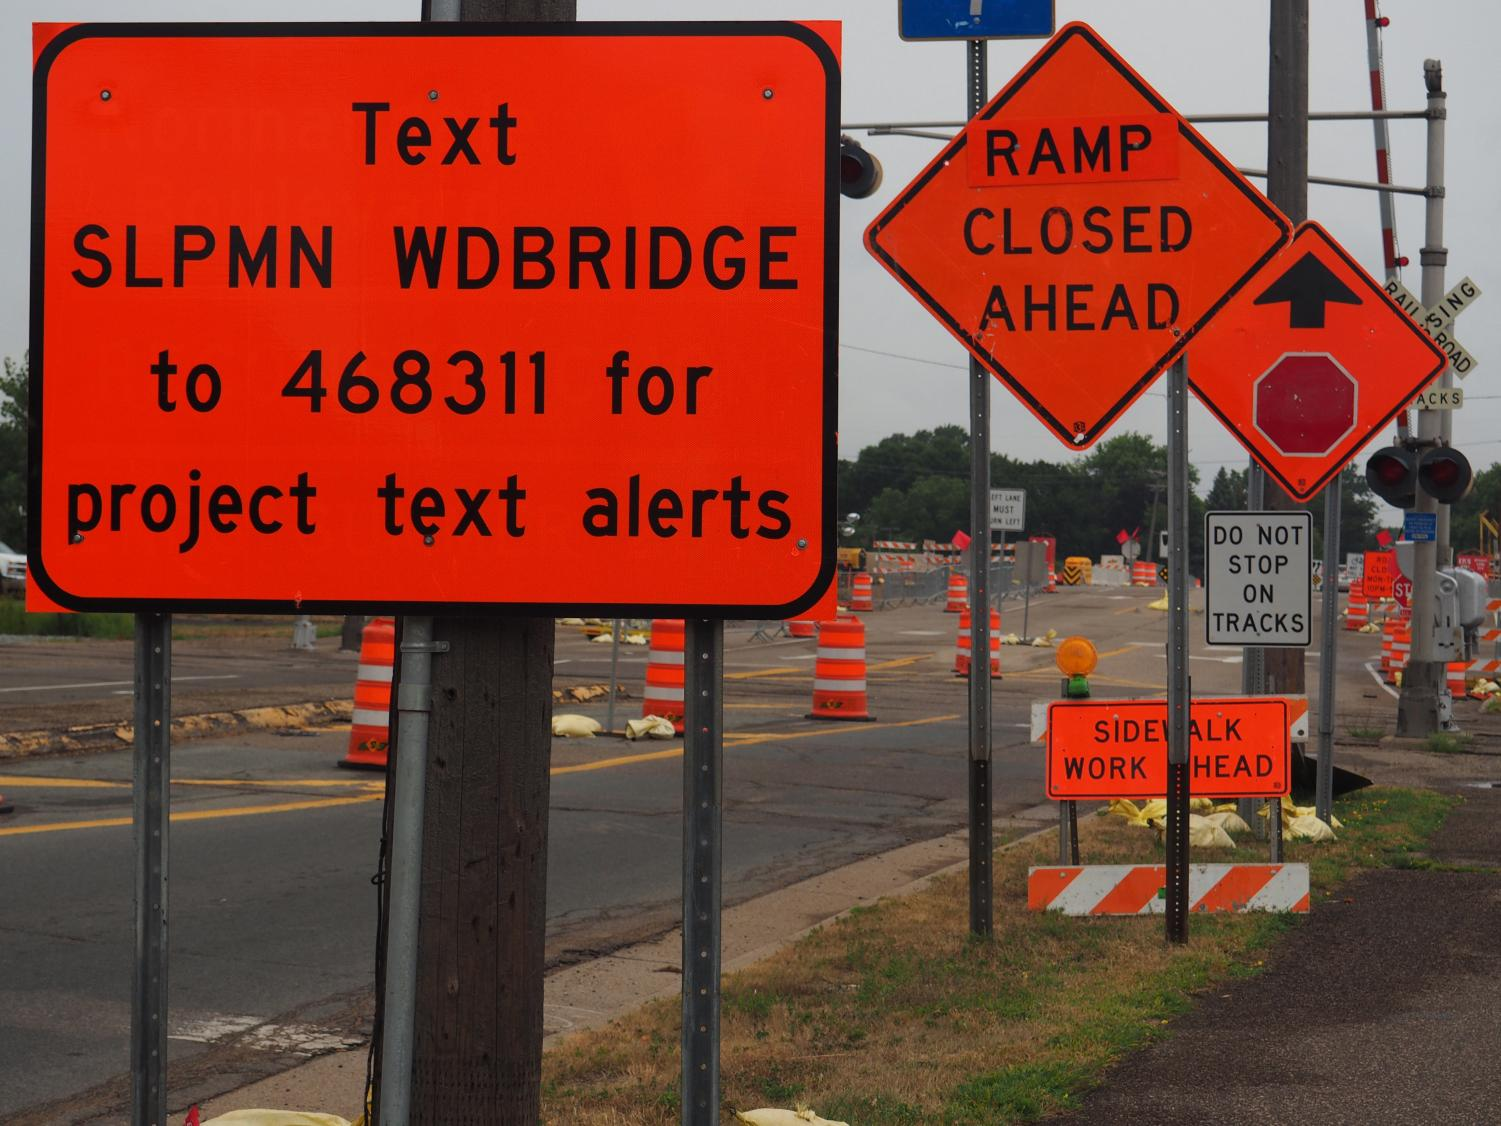 Signs and cones distract drivers on Wooddale Bridge. The bridge construction causes traffic buildup and confusion with many new signs and driving precautions.